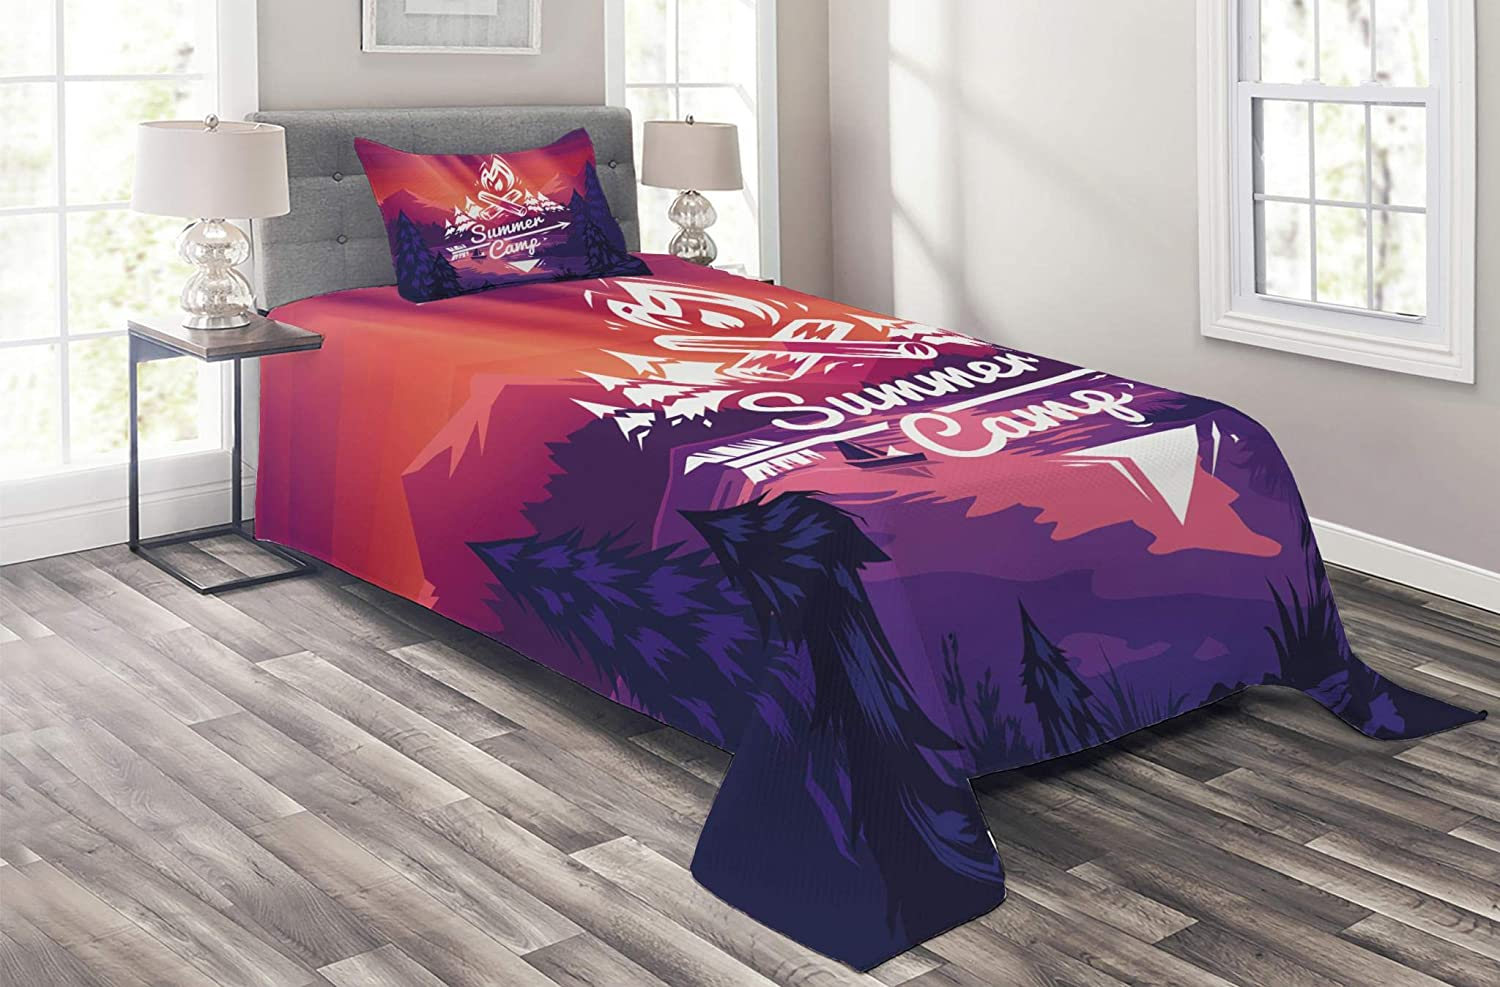 Lunarable Camper Coverlet Retro Poster Typogr Save money Challenge the lowest price of Japan Style Camp Summer